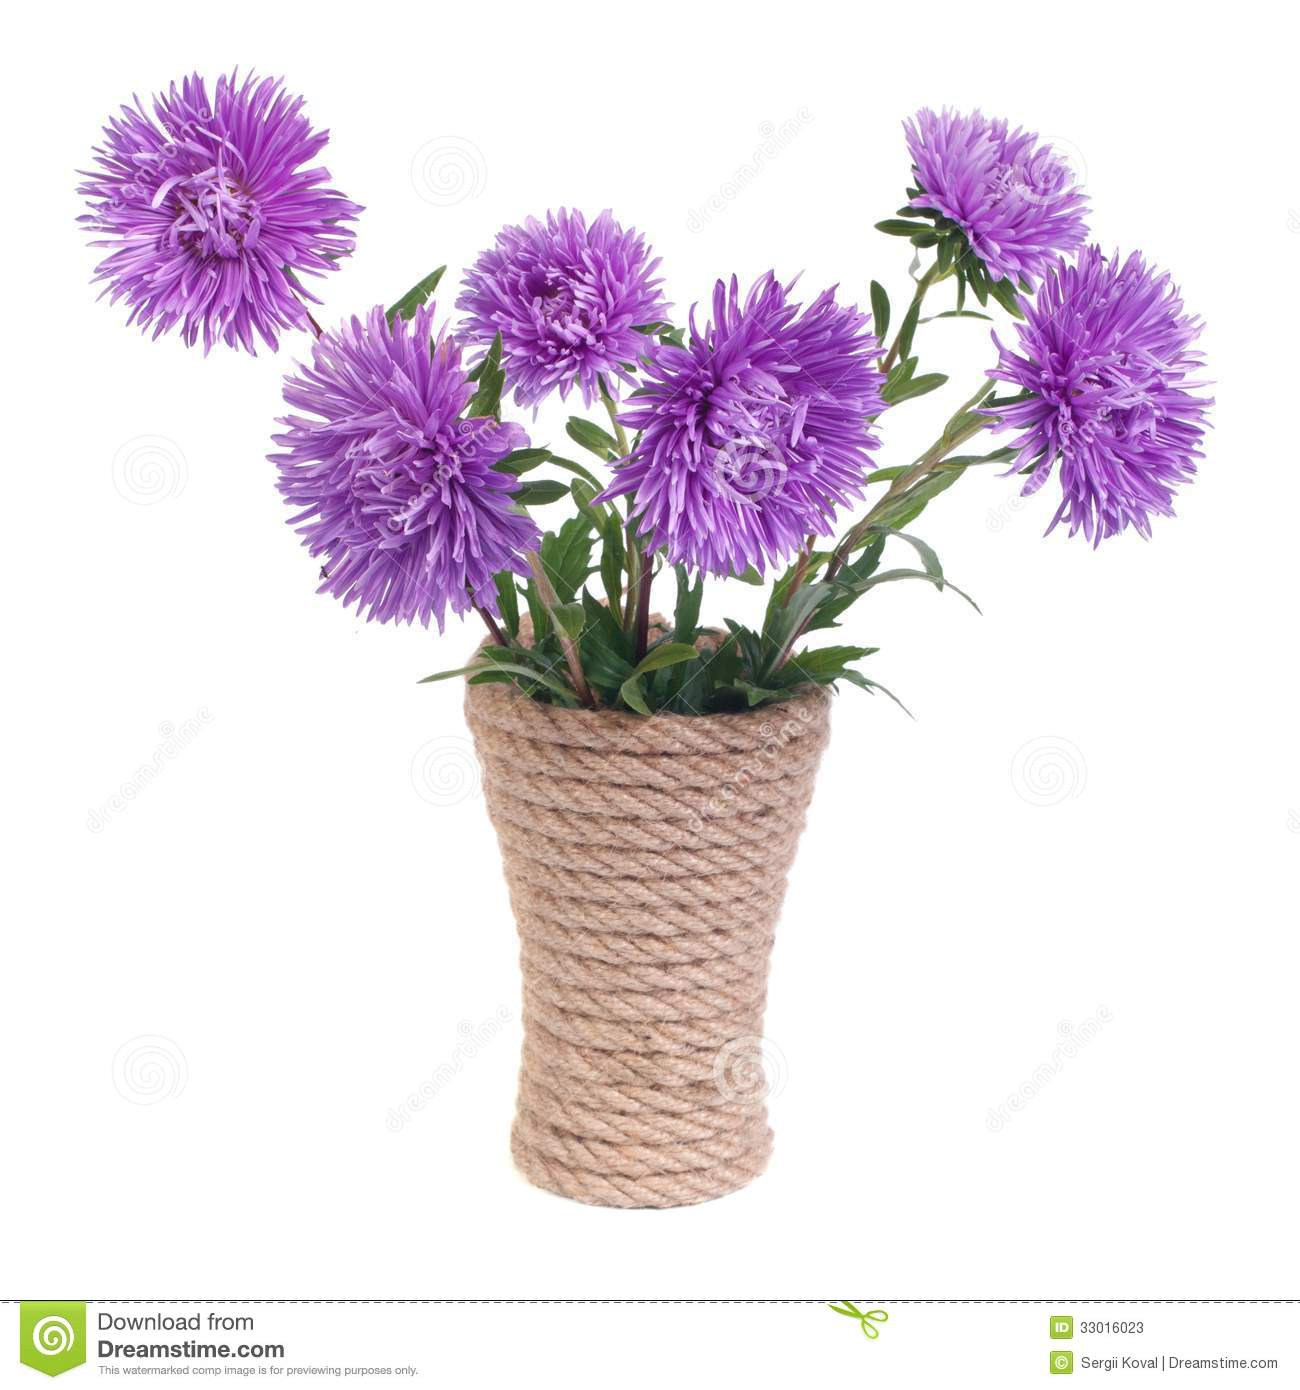 Beautiful Flower Vases The Beautiful Blue Aster Flowers In A Vase Stock Image